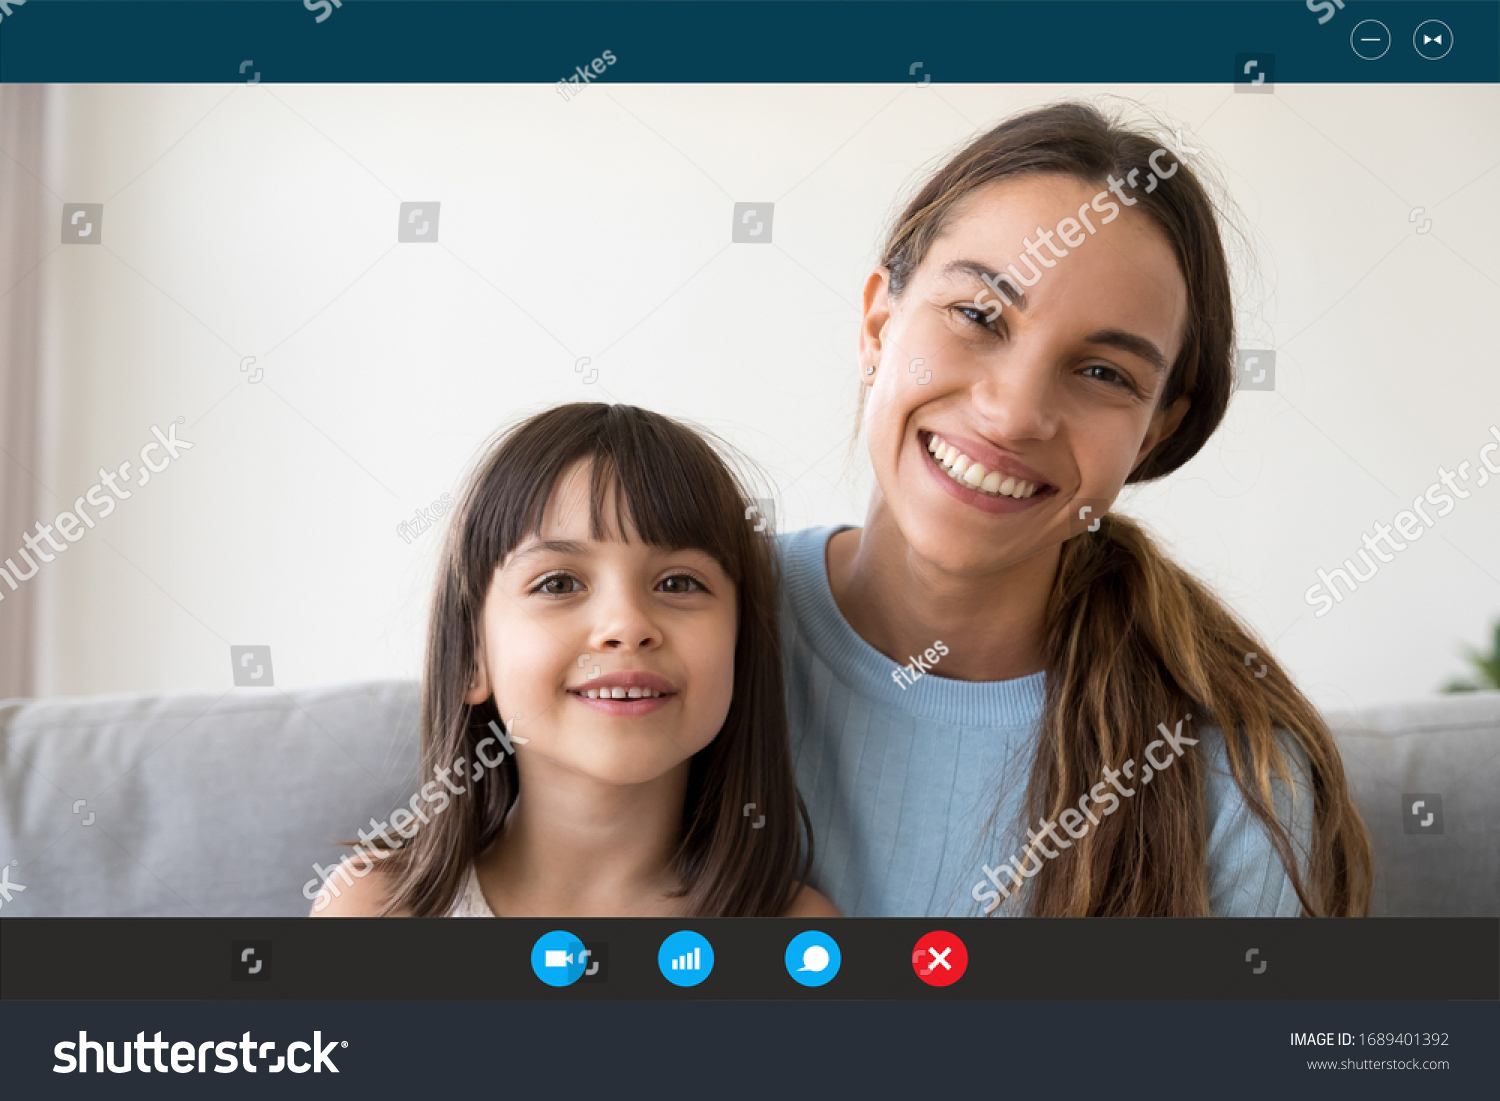 Headshot portrait of smiling young mother and little daughter speak talk on video call from home, screen view of happy mom and small girl child chat using Webcam, communicate online on quarantine #1689401392